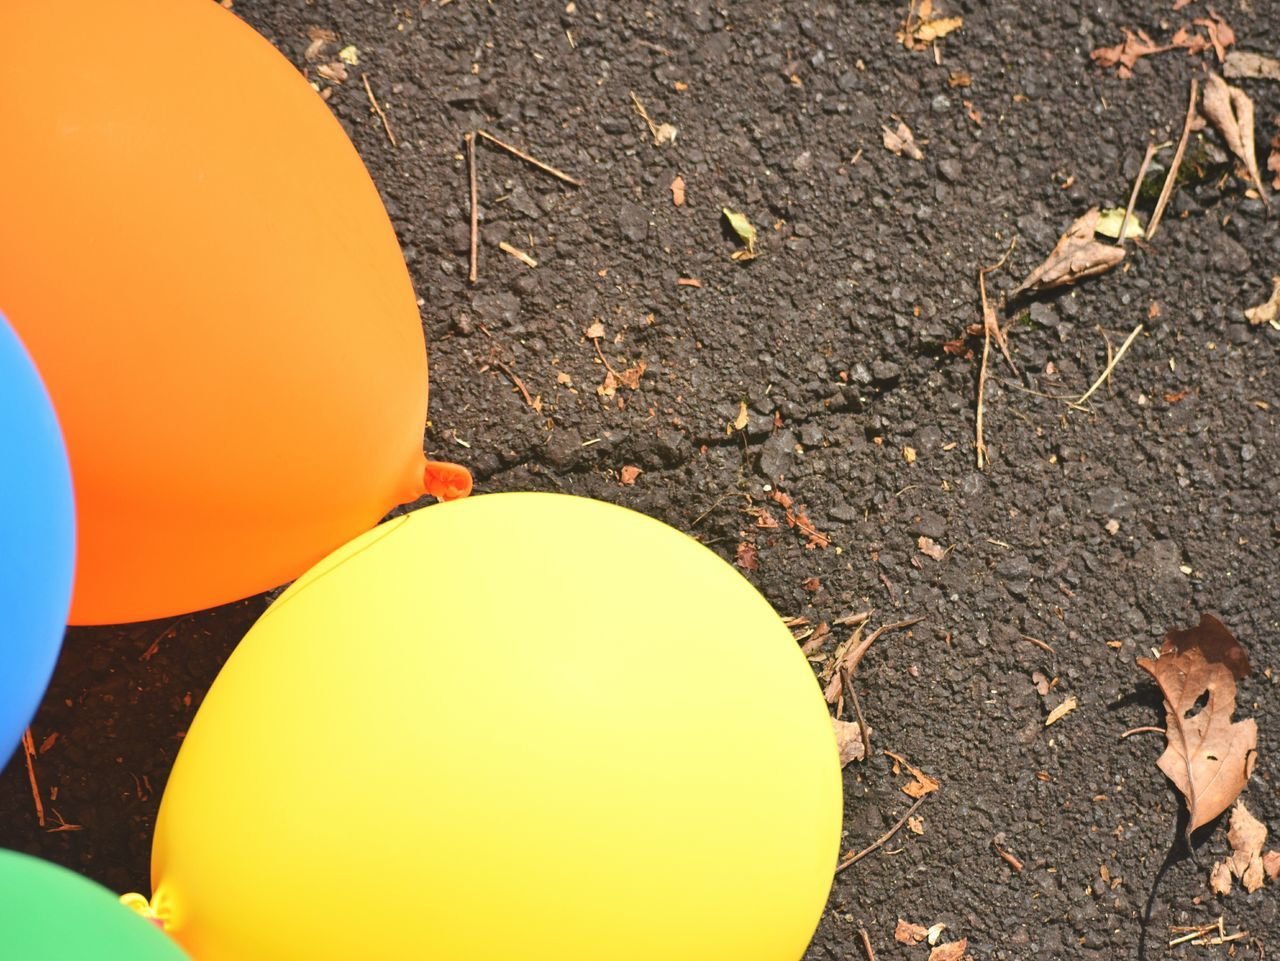 High Angle View Outdoors Day No People Close-up Trip Focus On Foreground Ground Level View Textures And Surfaces Balloons Ground Celebration Party Colorful Orange Color Yellow Streetphotography Carnival Crowds And Details Road Adventure Way